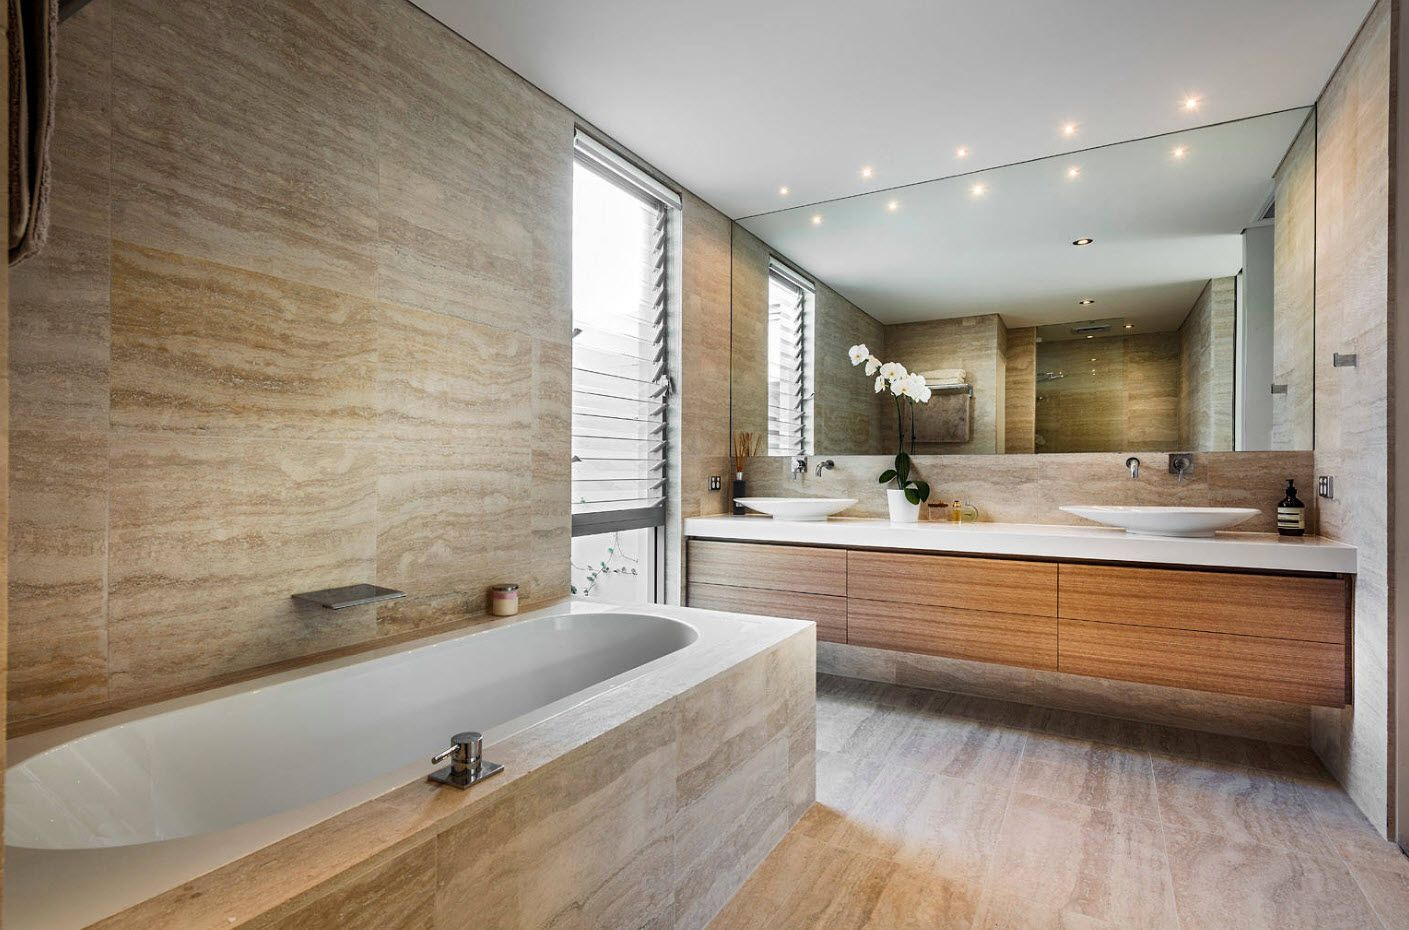 Bathroom Design Trends & Decoration Ideas 2017 totally wooden kingdom